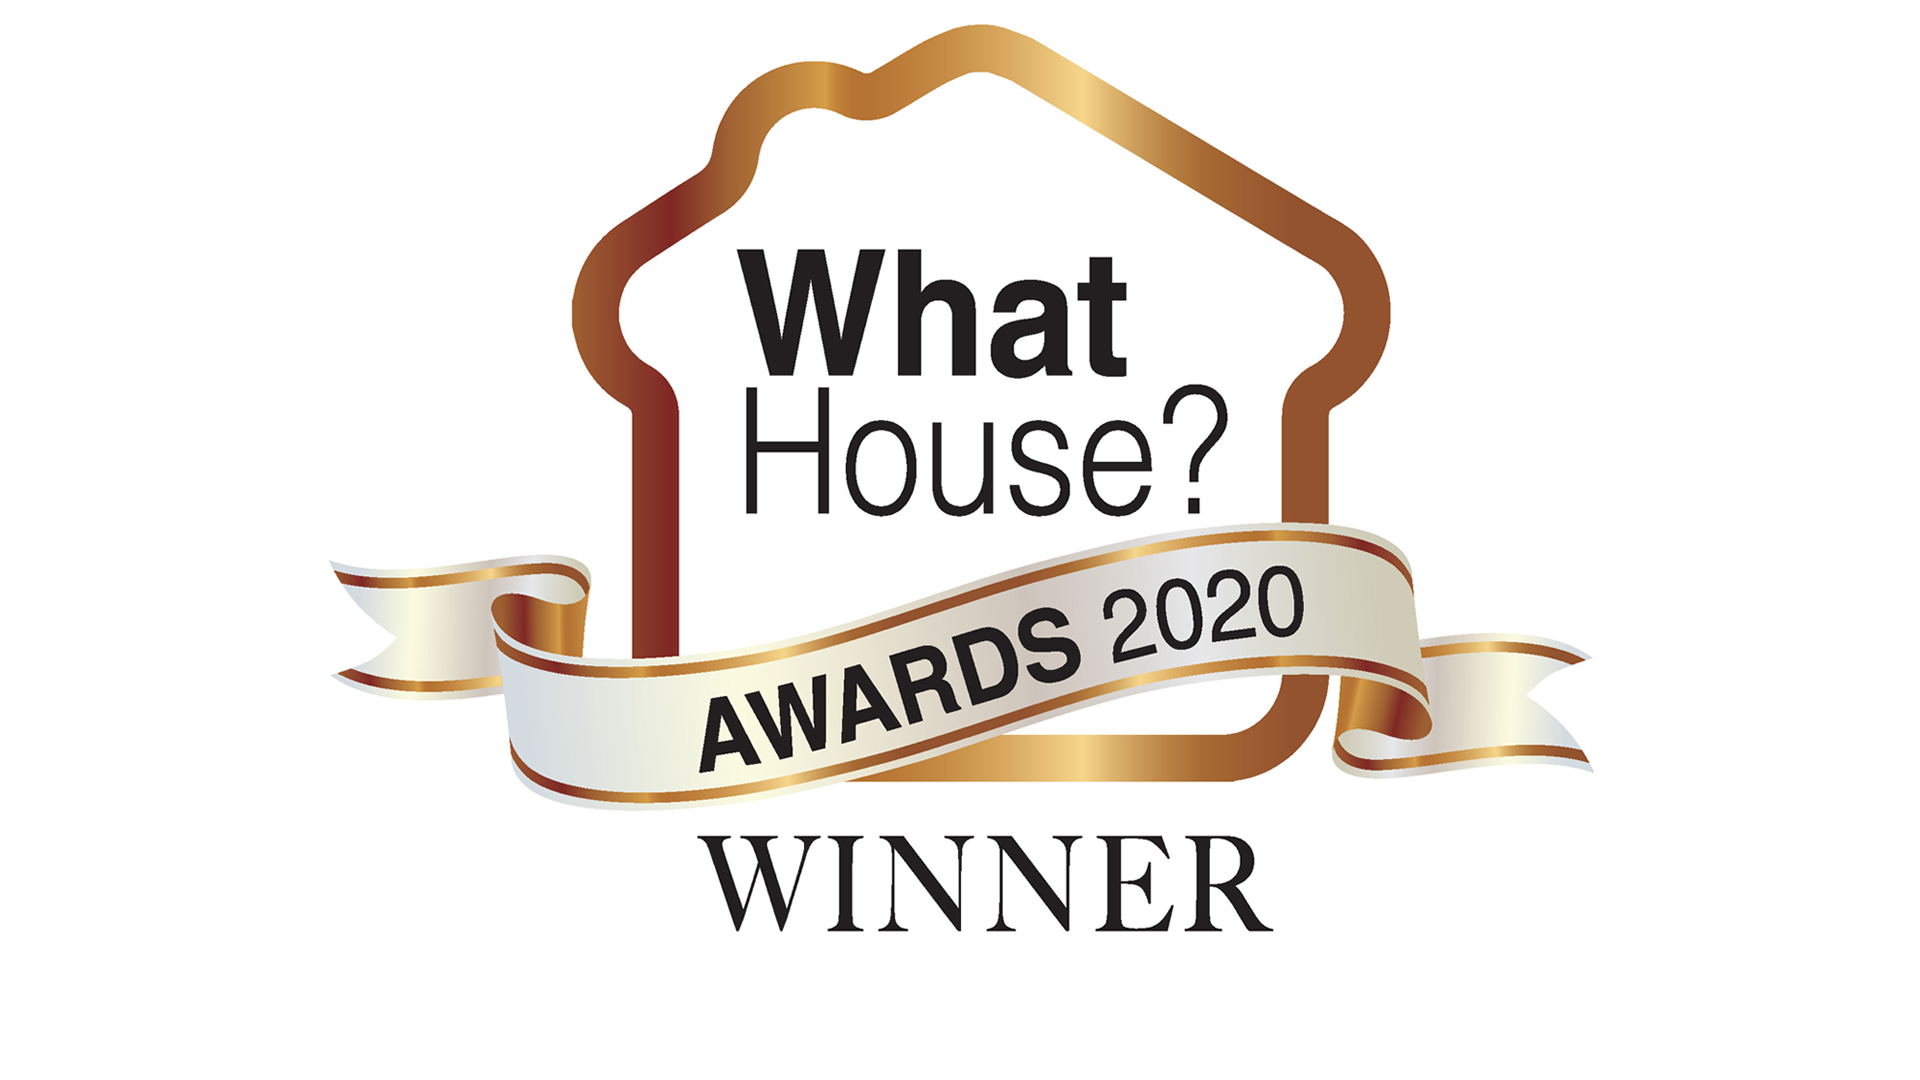 National Housebuilding Awards Win